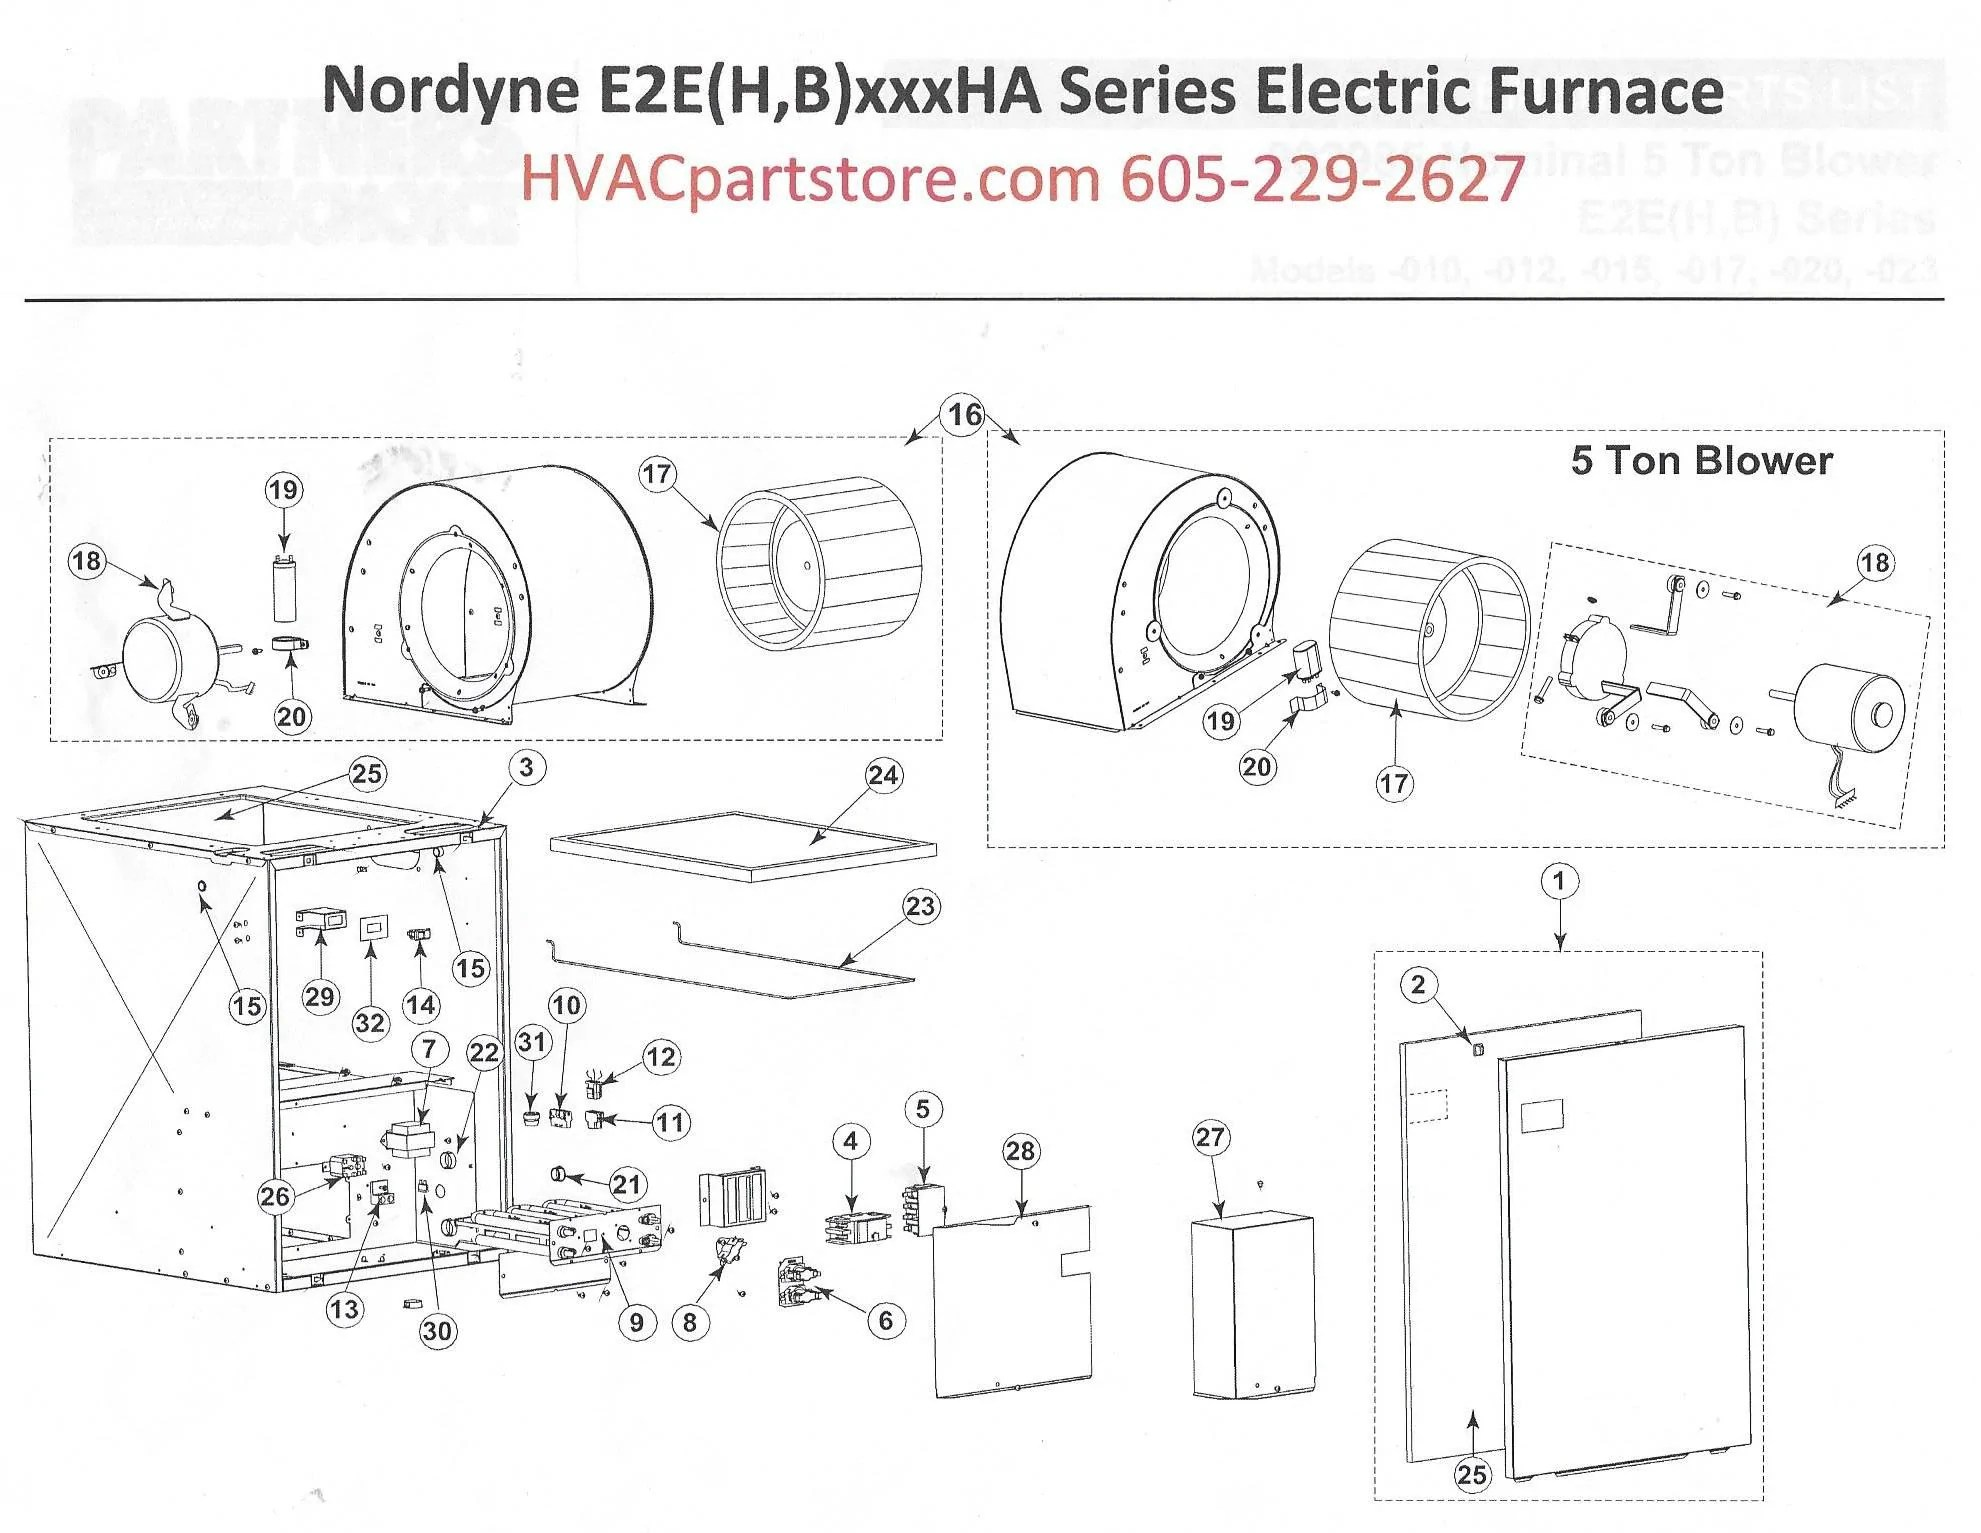 hight resolution of  3f20 40b2 8e78 670eeb0ab556 9778179831979465996 eb23a furnace wiring diagram coleman gandul 45 77 79 nordyne furnace diagram nordyne ac units